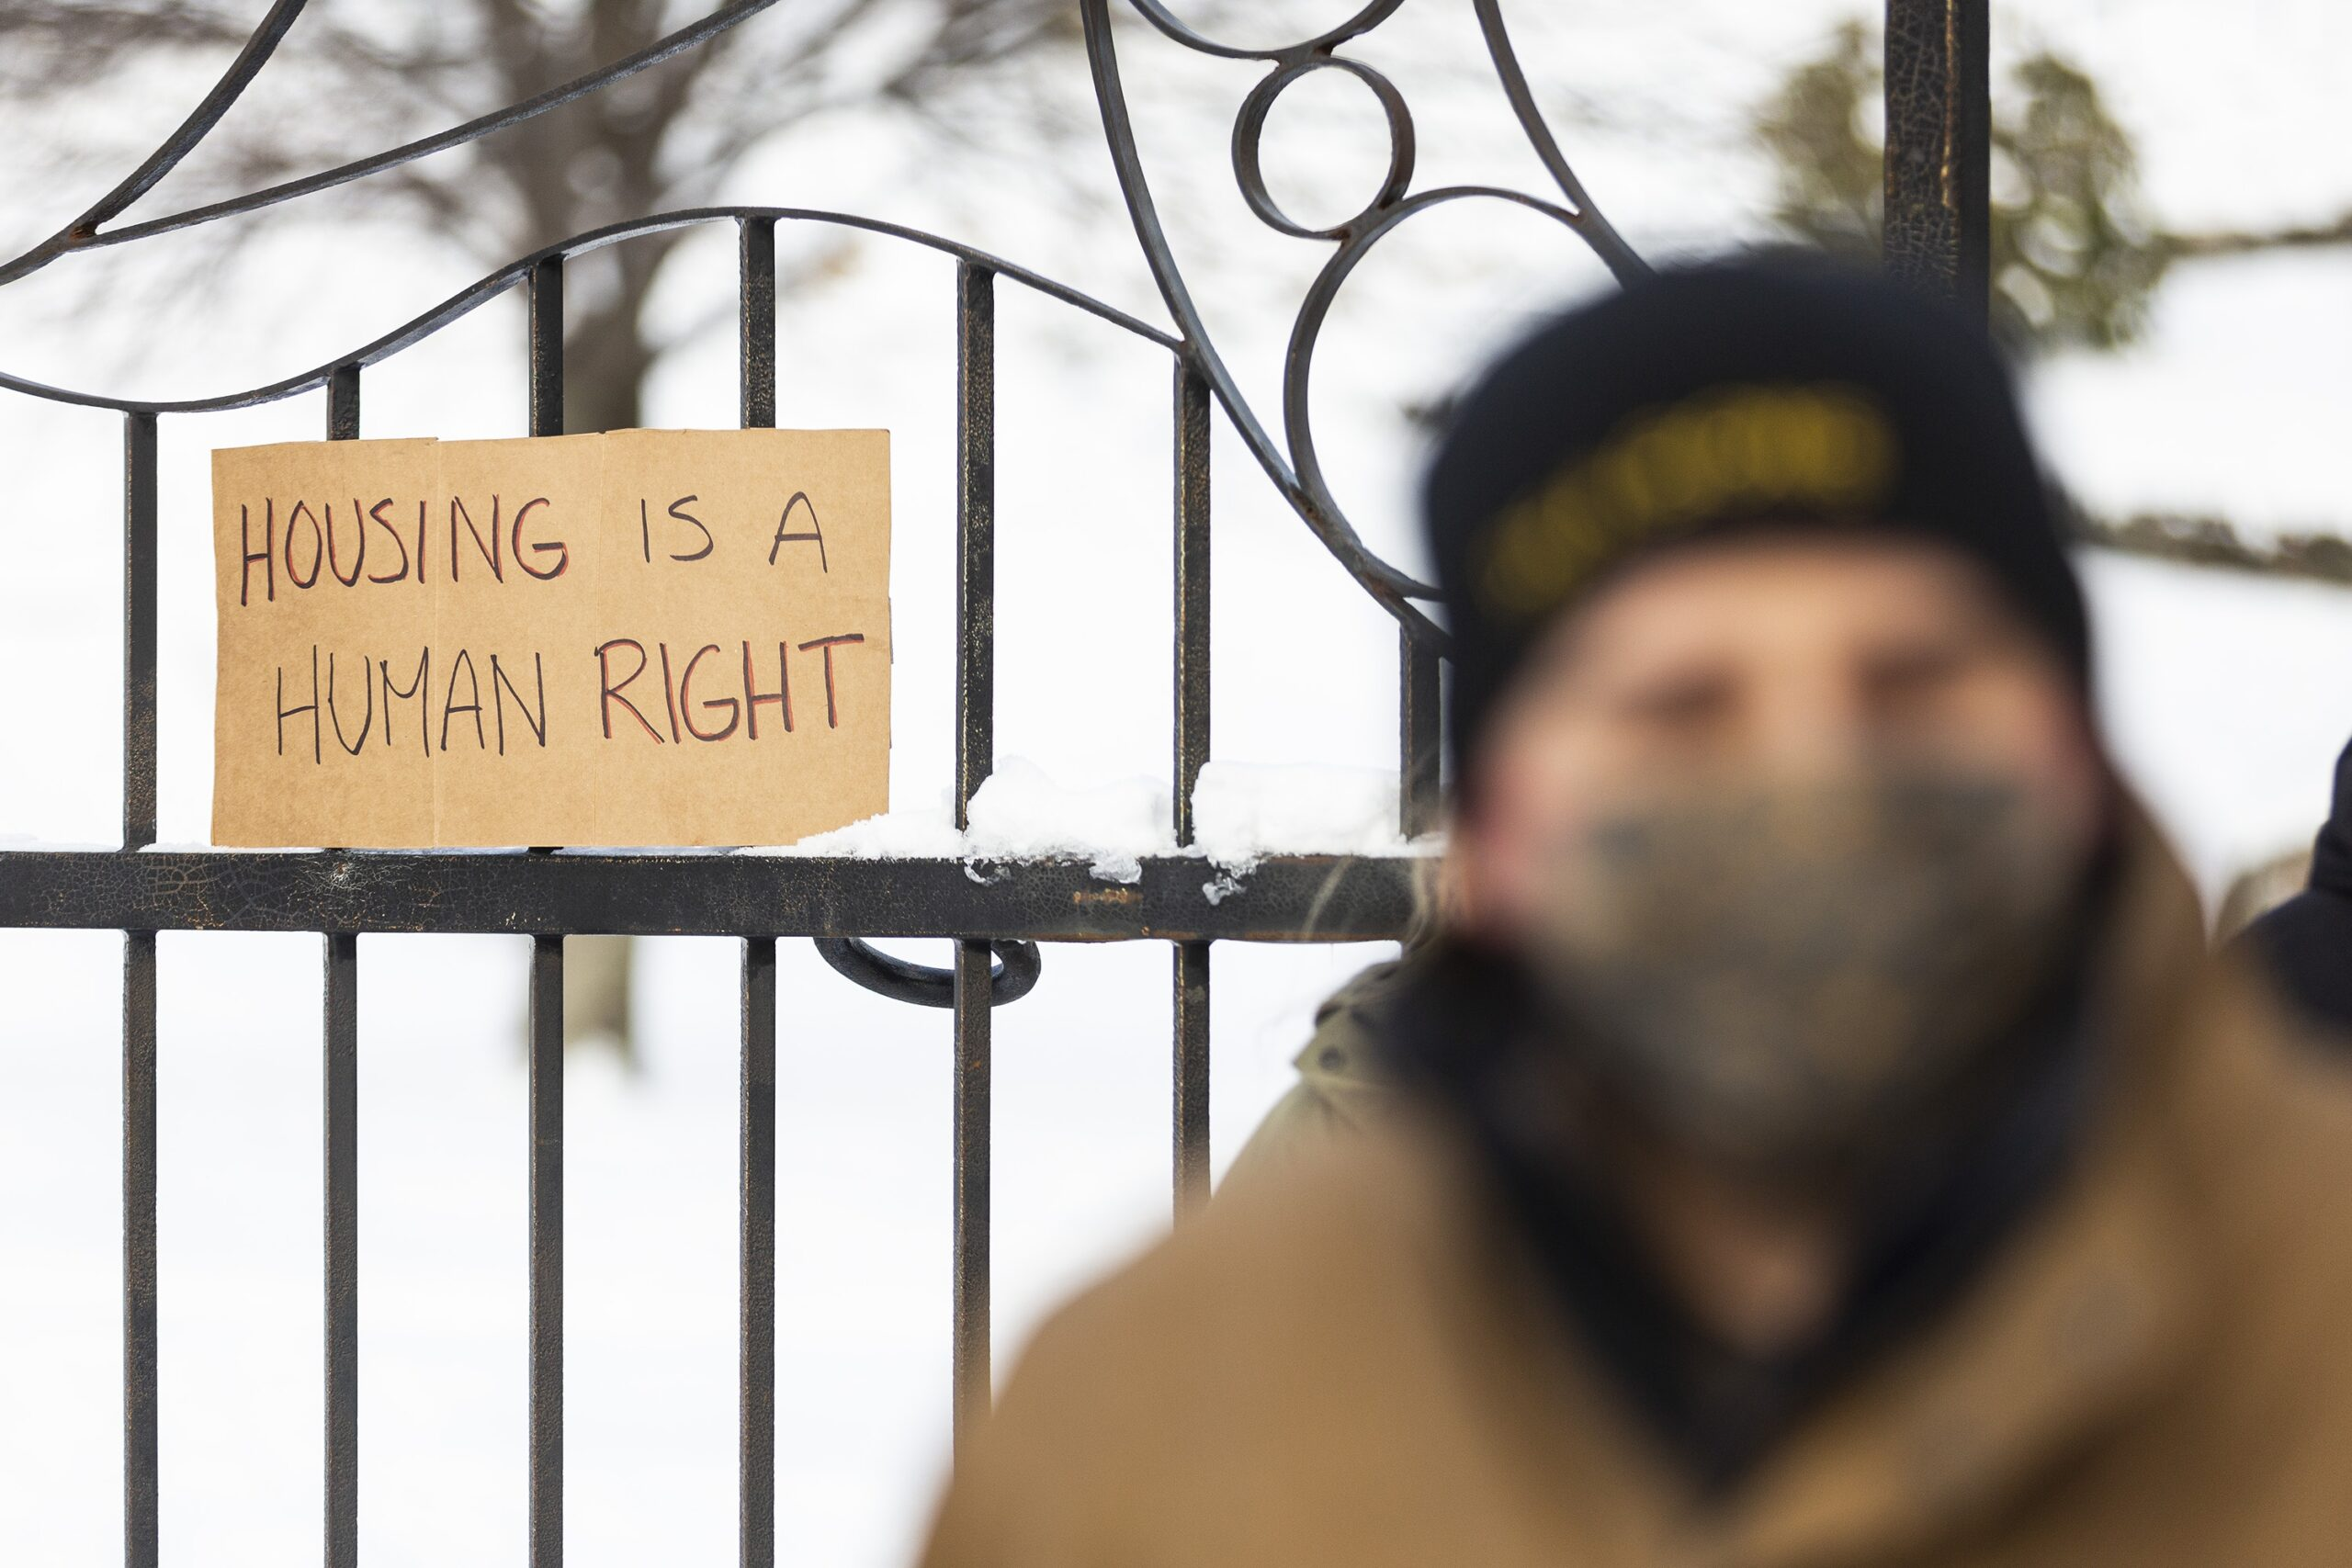 A cardboard sign reading Housing is a human right is propped on a wrought iron fence in the winter. In the foreground, very blurry, you can see a man wearing a winter coat, toque, and fabric mask.